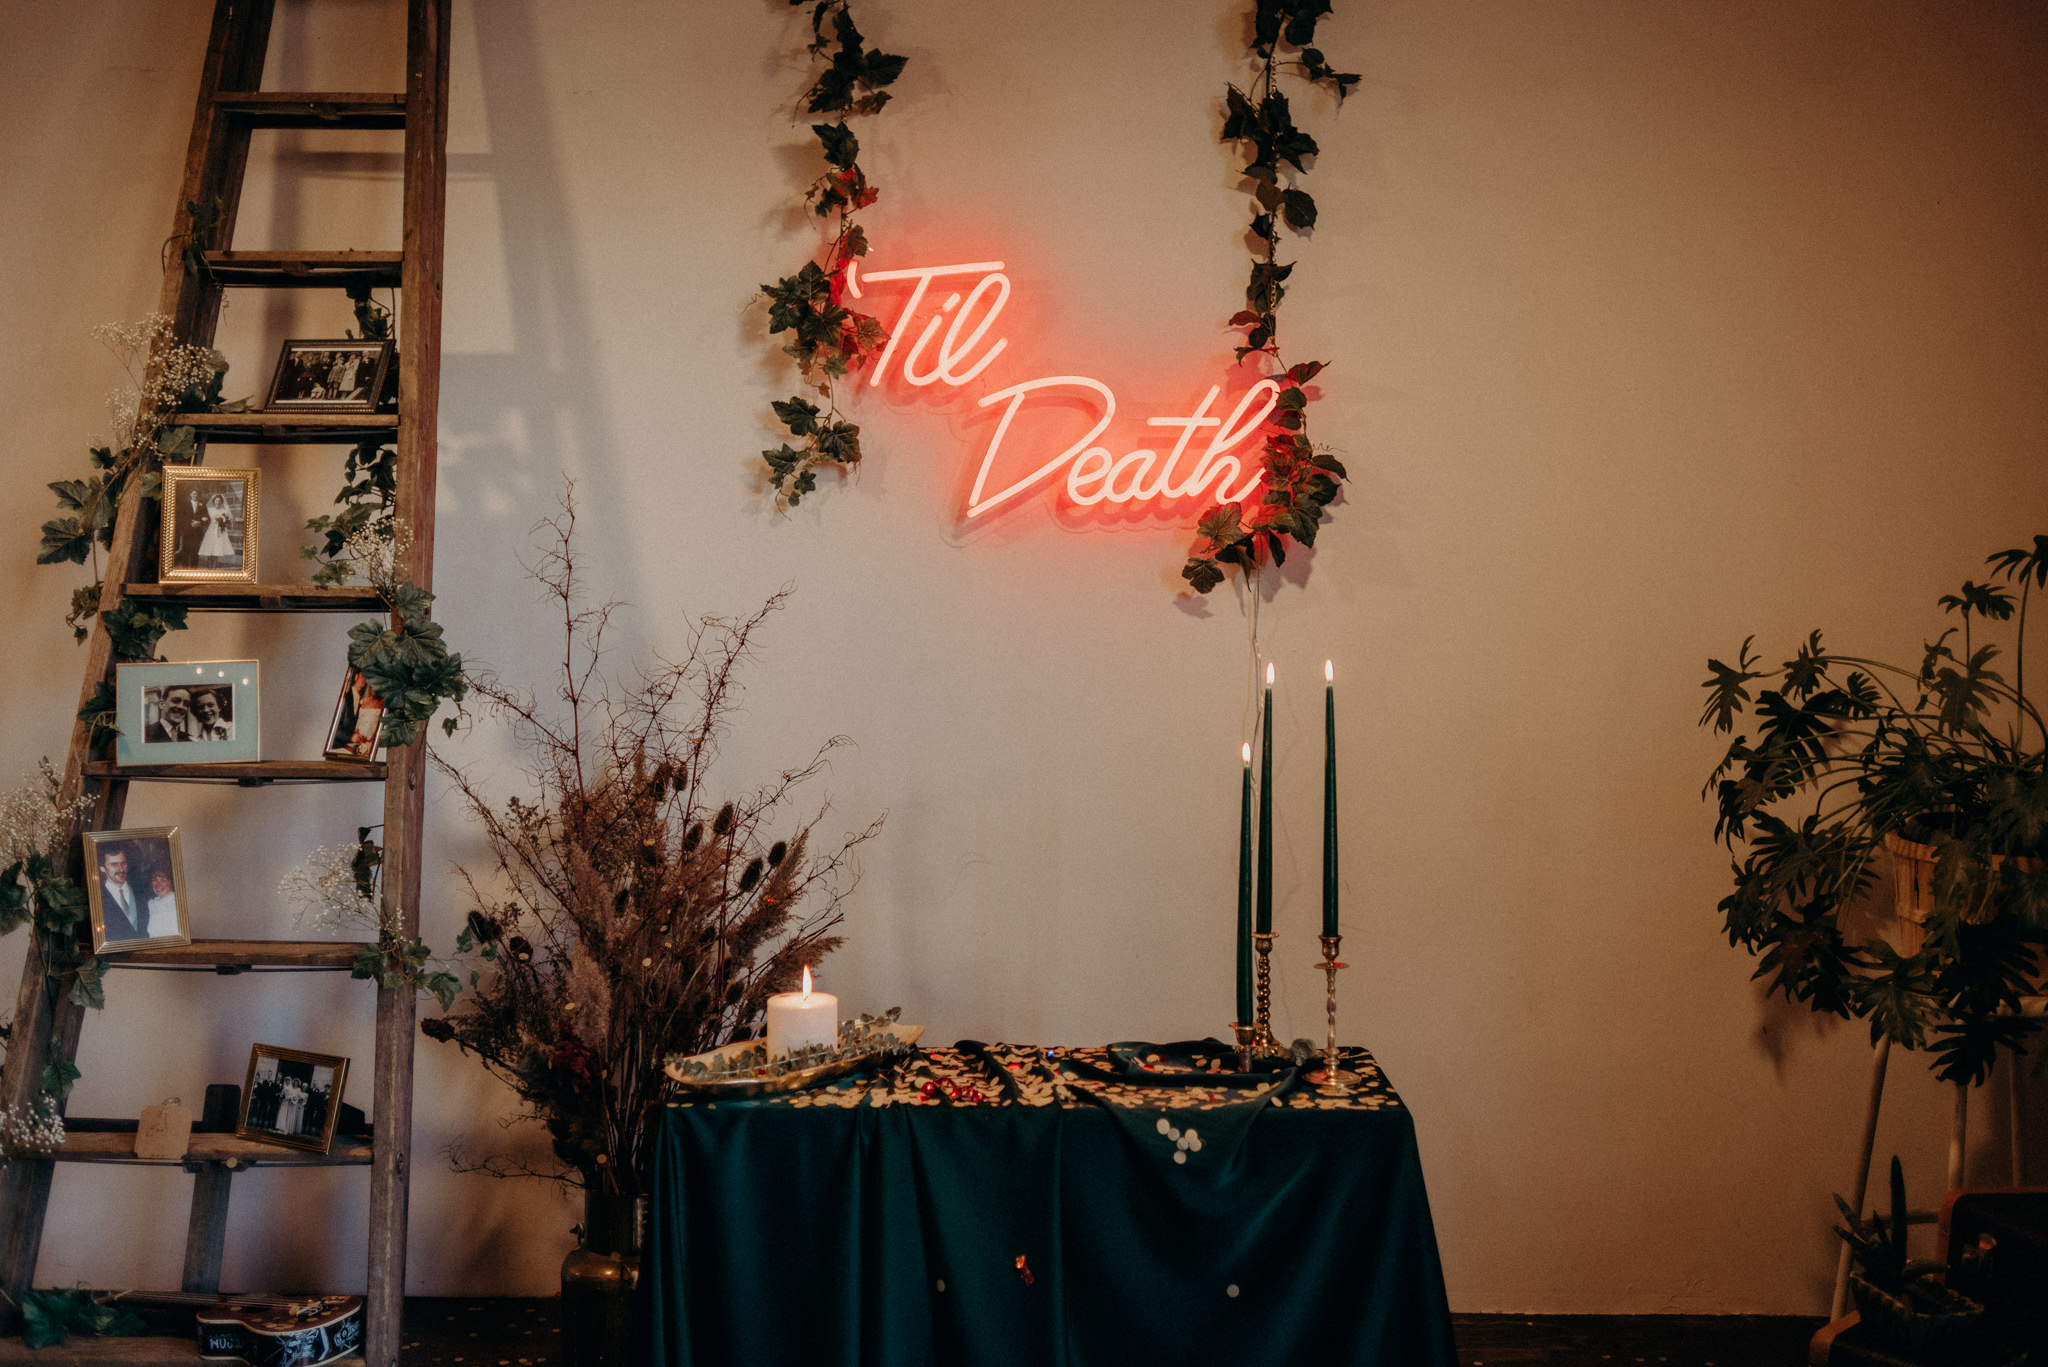 'til death neon sign, marriage license signing table decor in old loft